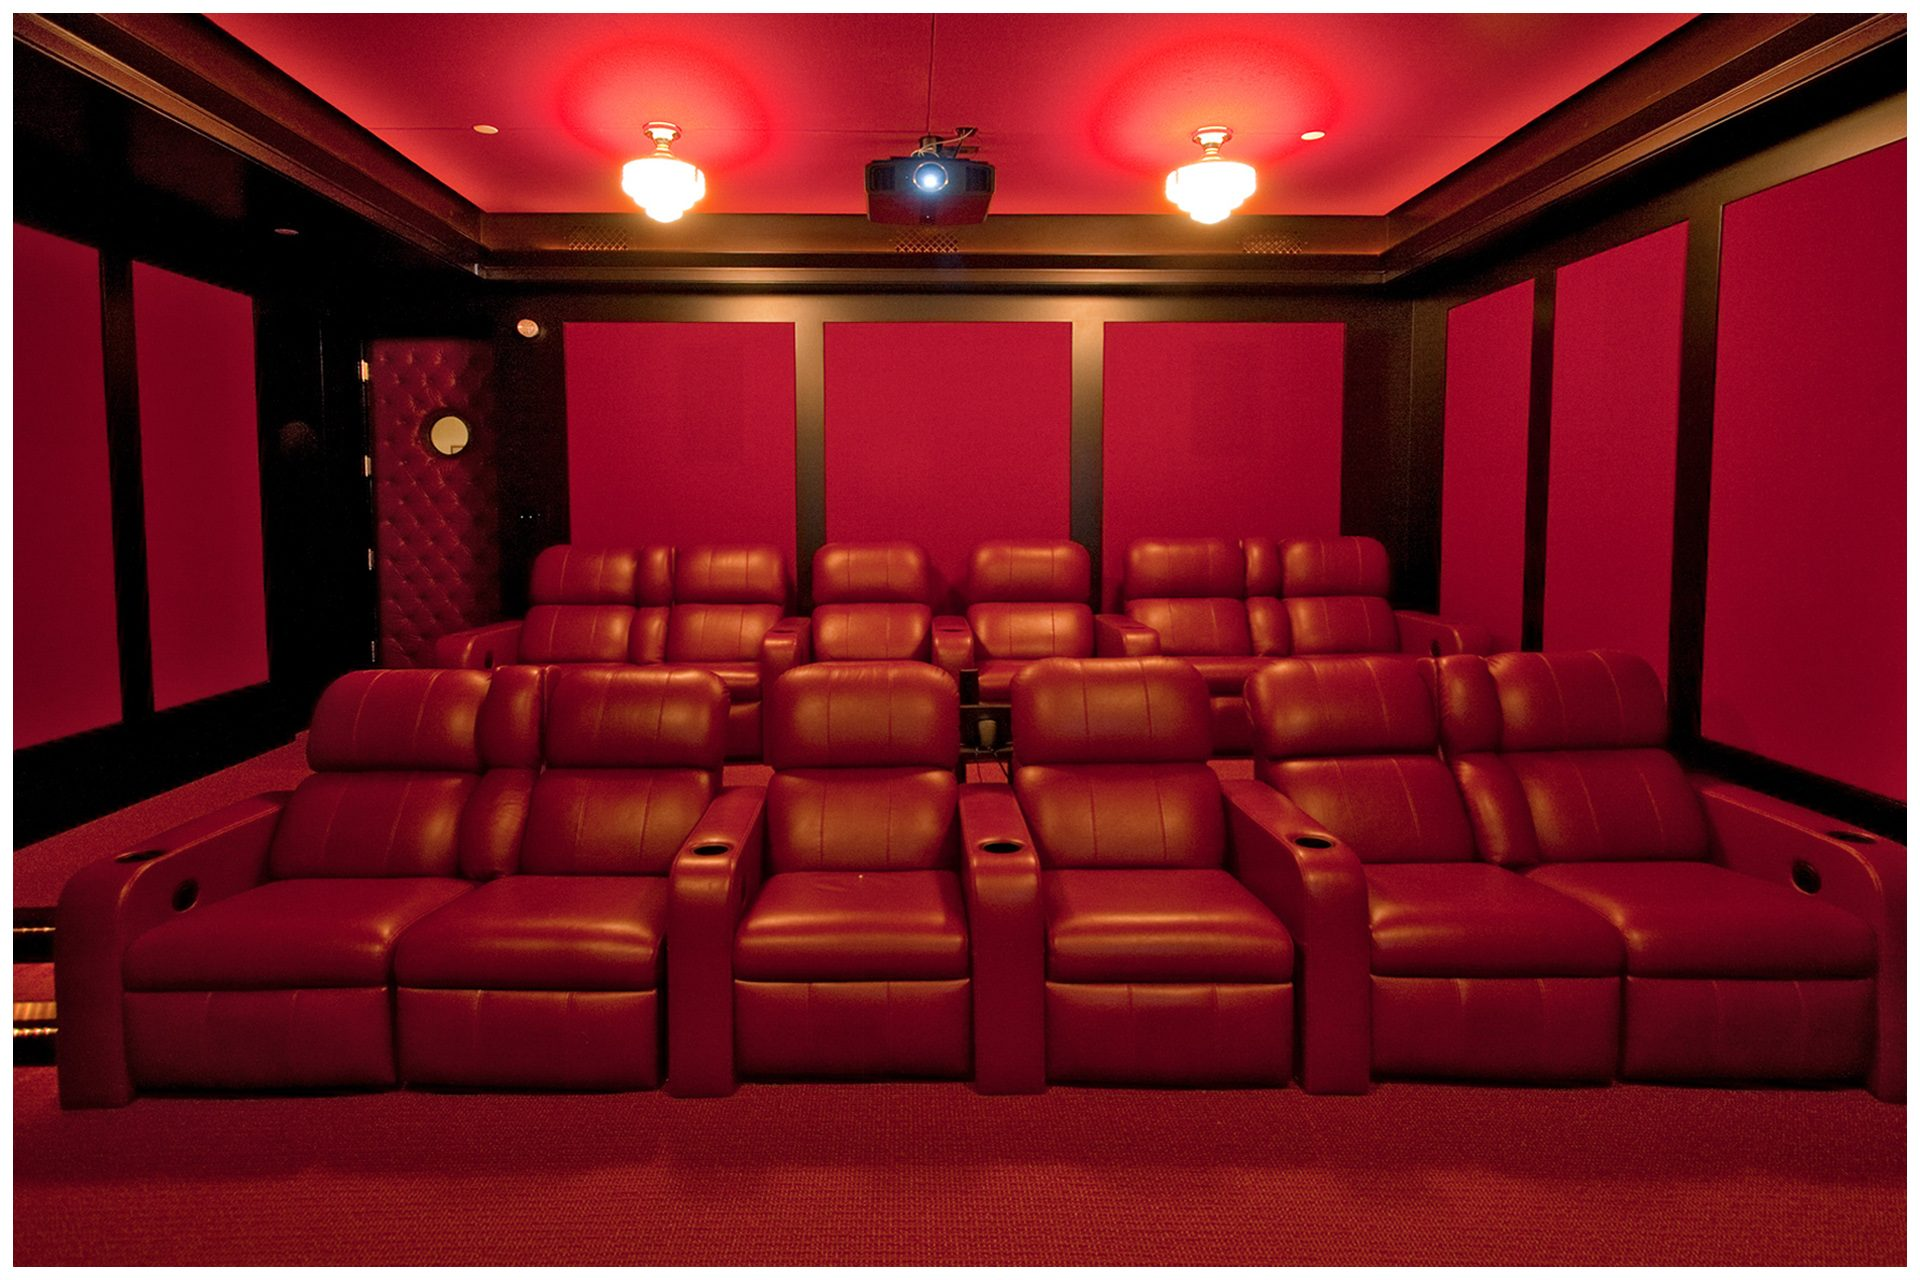 DEDICATED BASEMENT THEATER 12 seat dedicated basement theater with Acoustic paneling to limit sound intrusion outside the room. Front Speaker elements are enclosed into cabinetry and all other  speakers are placed under acoustical panels.Screen and seating are placed on the right side of the room to allow a wide isle leading to exit door in so doing, seats in the center are centered on the screen and front speakers.System is enclosed in an adjacent closet. JBL Synthesis speakers elements are hidden behind fabric in custom wall panelings.